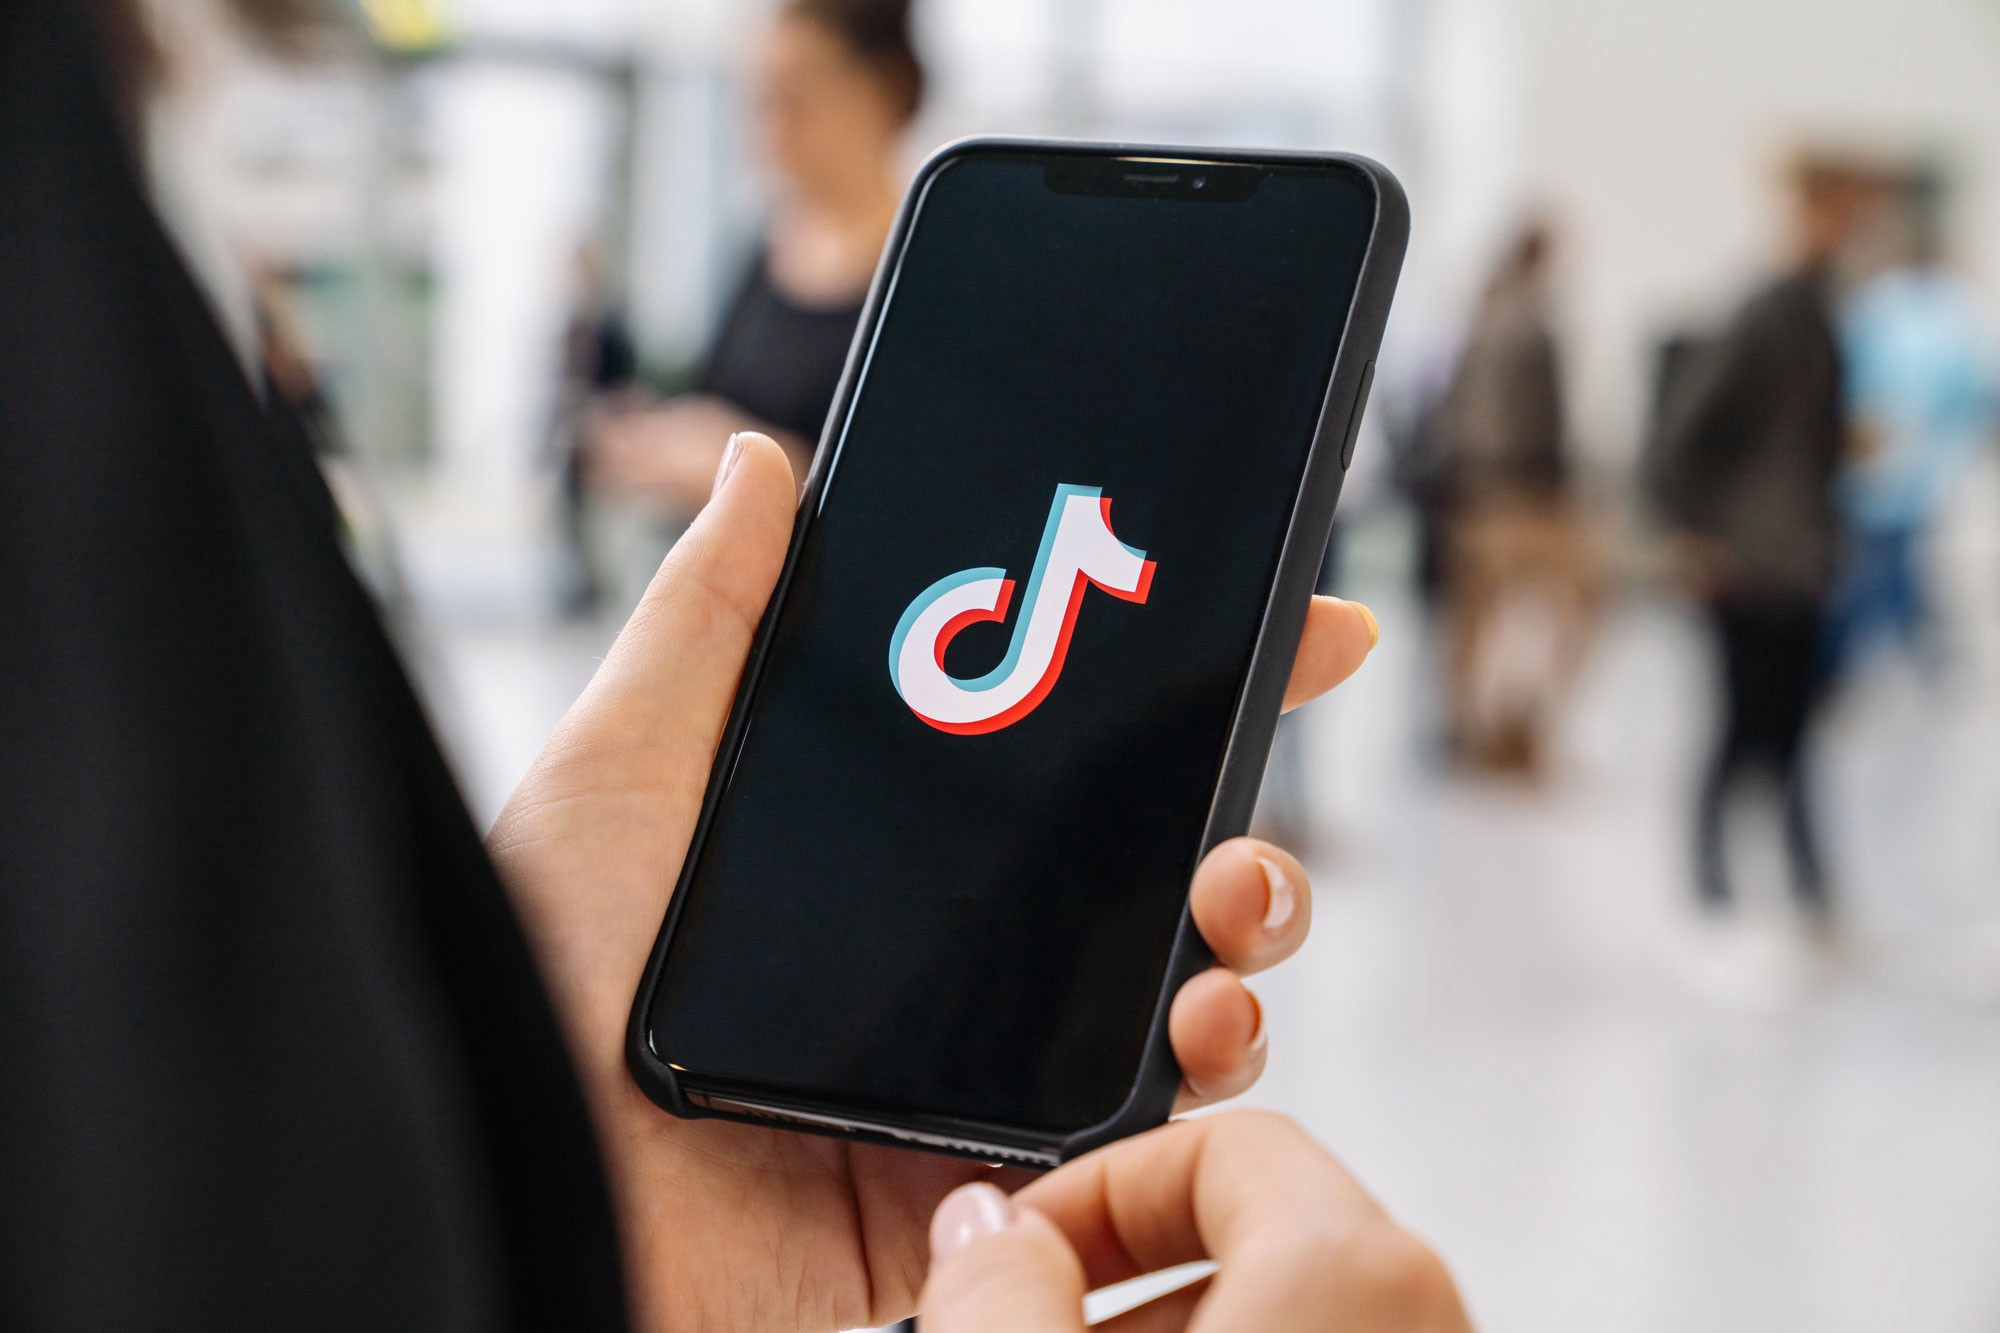 A person holding up a phone with a splash screen with the TikTok logo